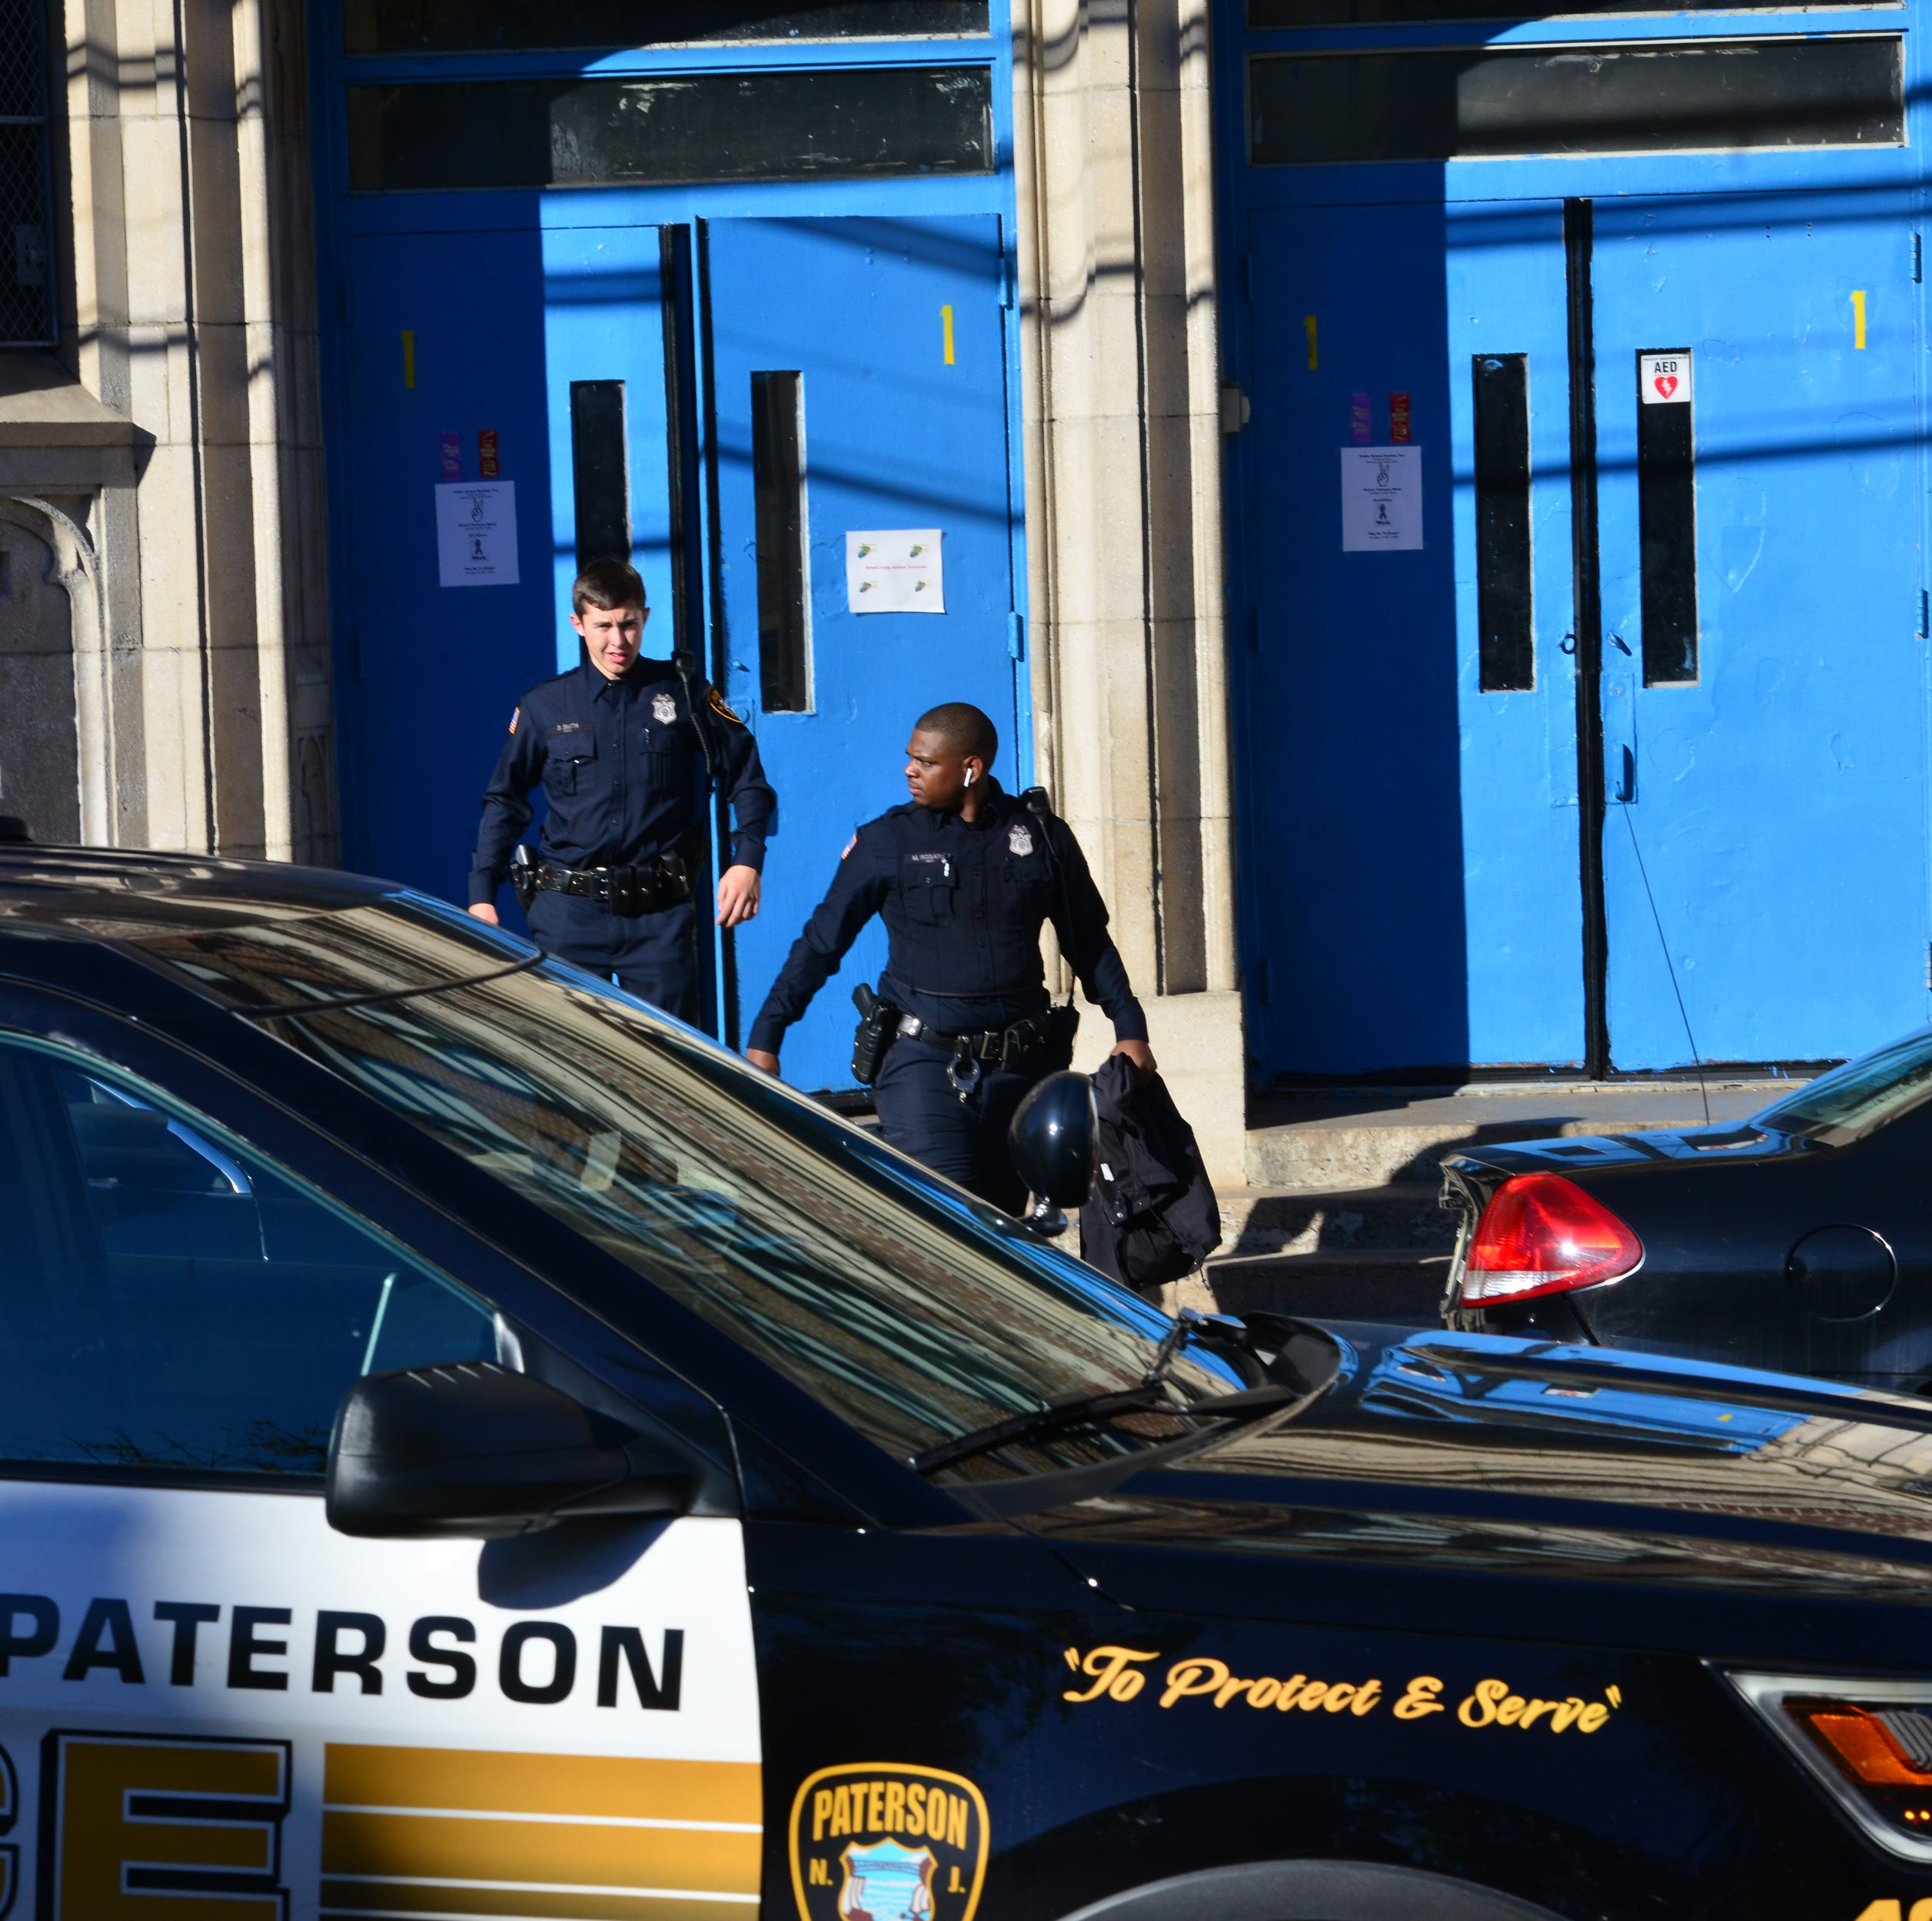 Police investigating report of an abduction near School 10 in Paterson